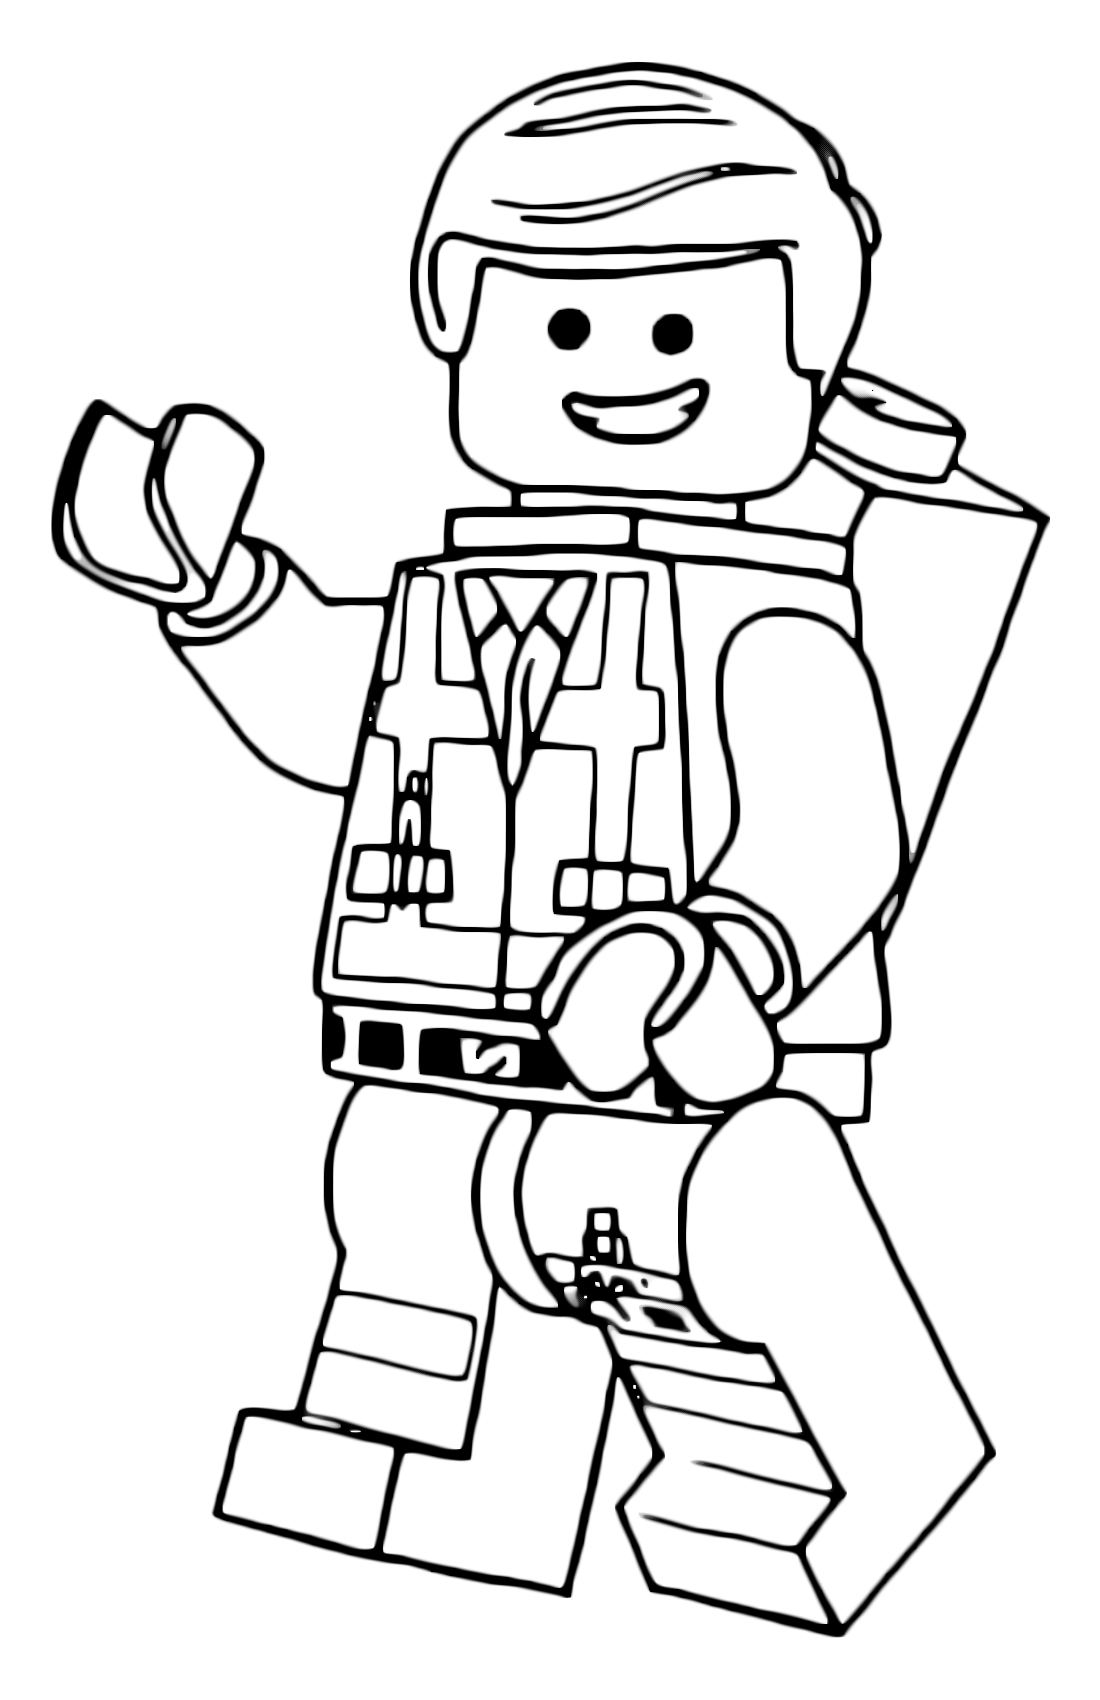 lego pages to color lego ninjago coloring pages best coloring pages for kids to lego color pages